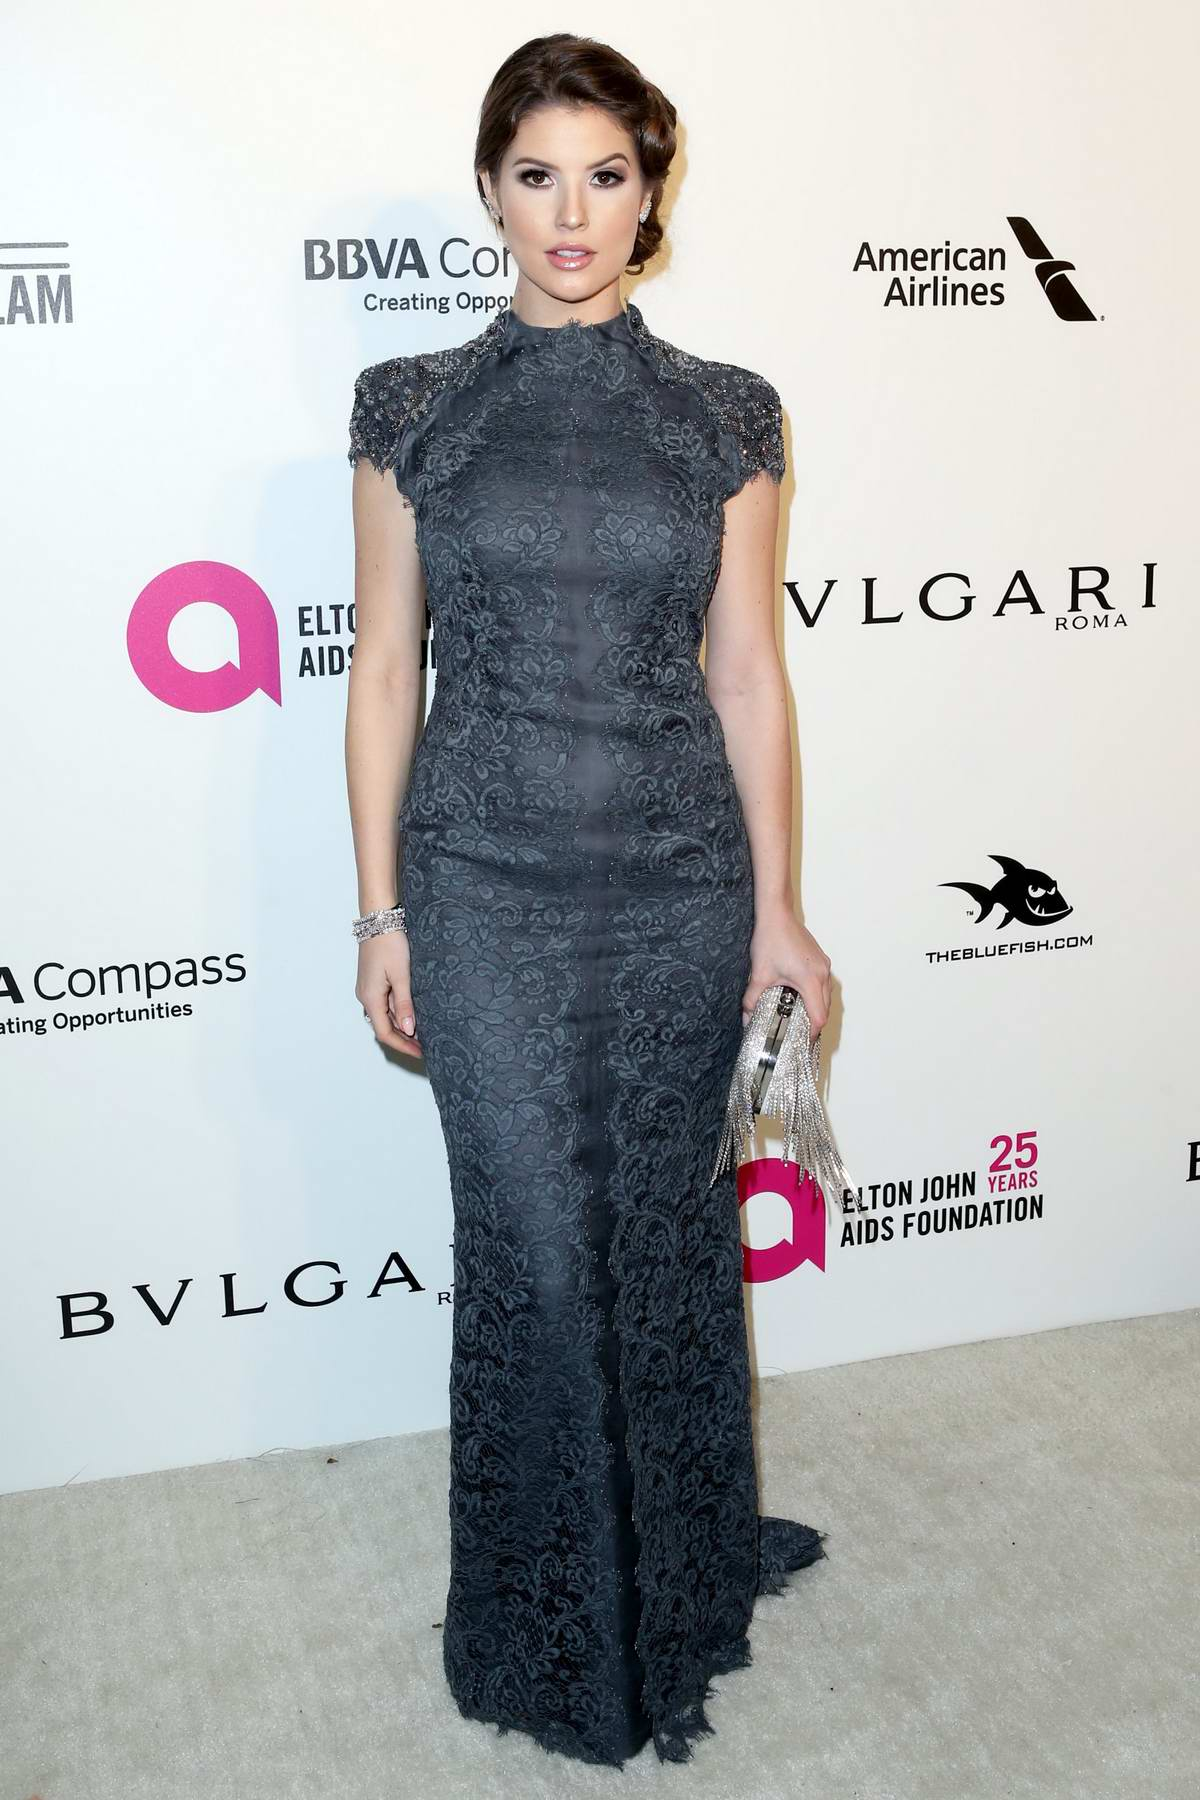 Amanda Cerny at the 26th Annual Elton John AIDS Foundation Academy Awards Viewing Party in Hollywood, Los Angeles